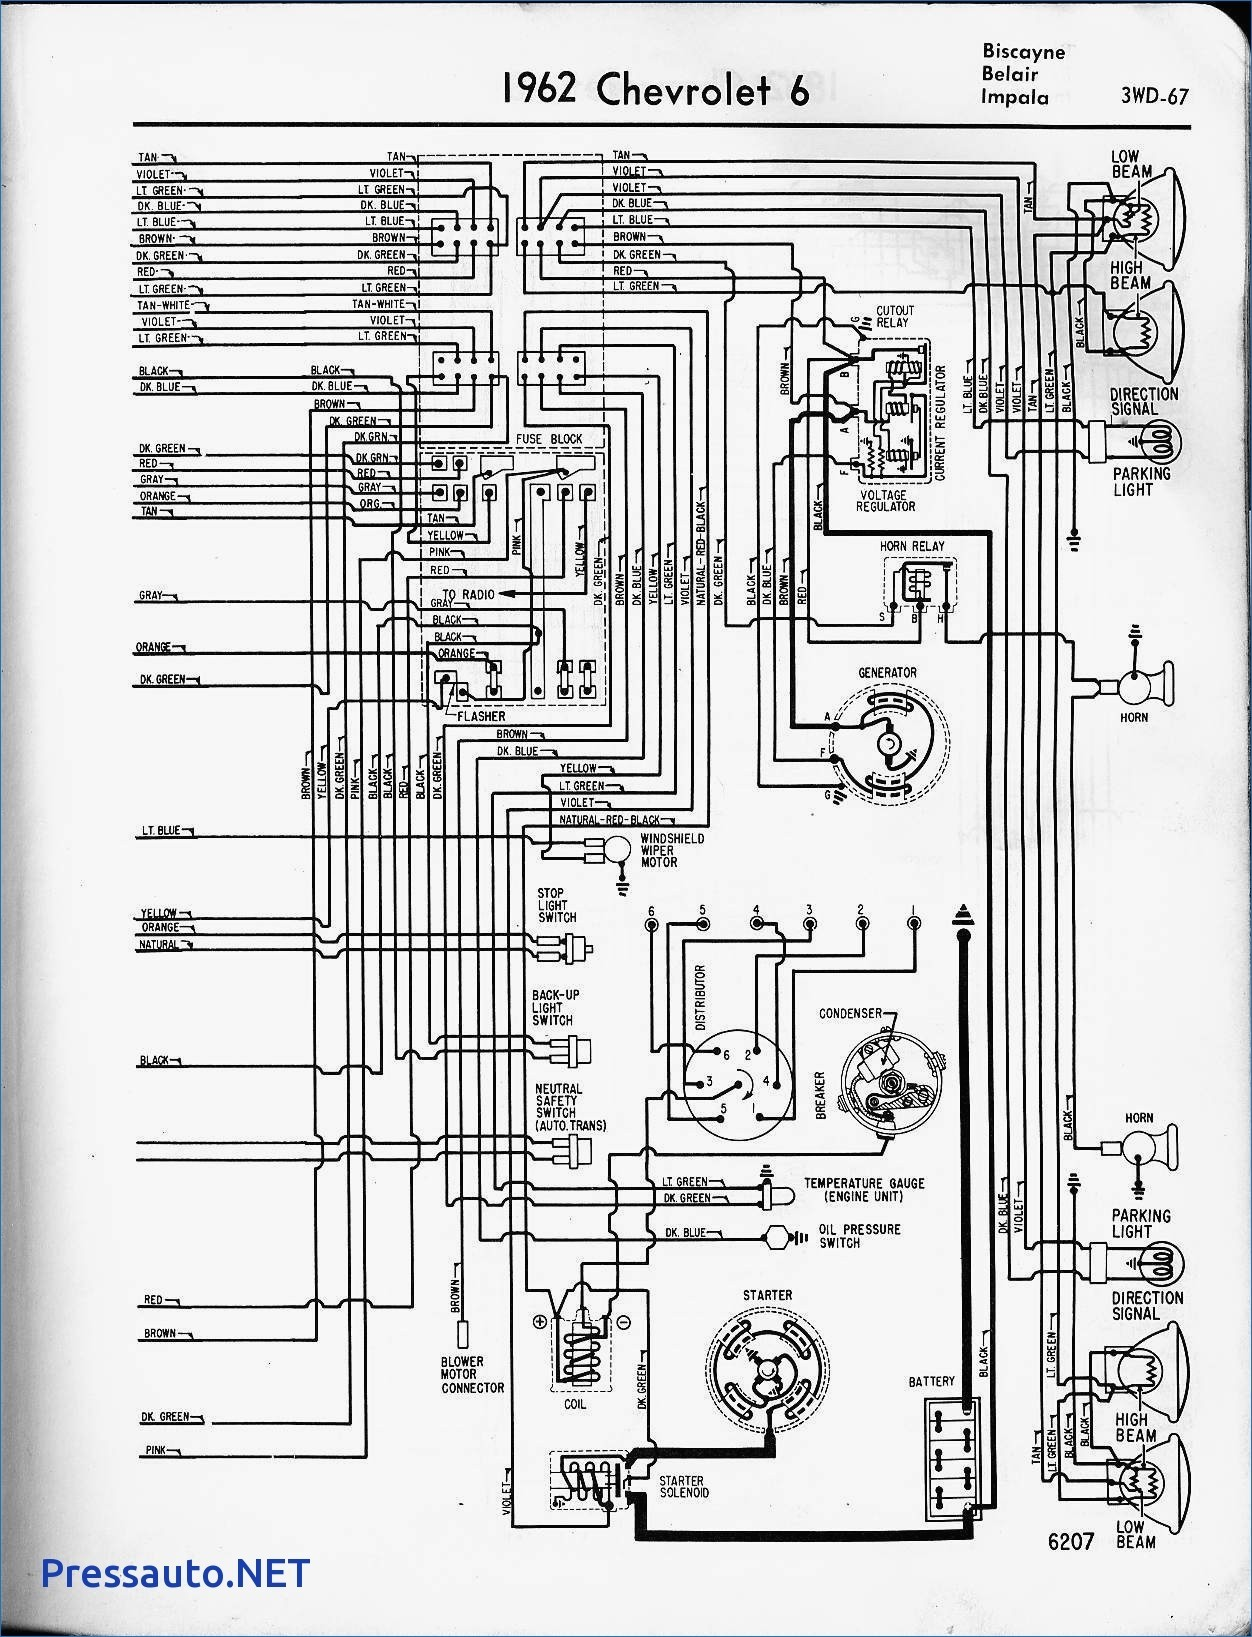 62 impala wiring diagrams light switch trusted wiring diagrams u2022 rh 149 28 242 213 1965 impala wiring diagram 1962 chevrolet impala wiring diagram